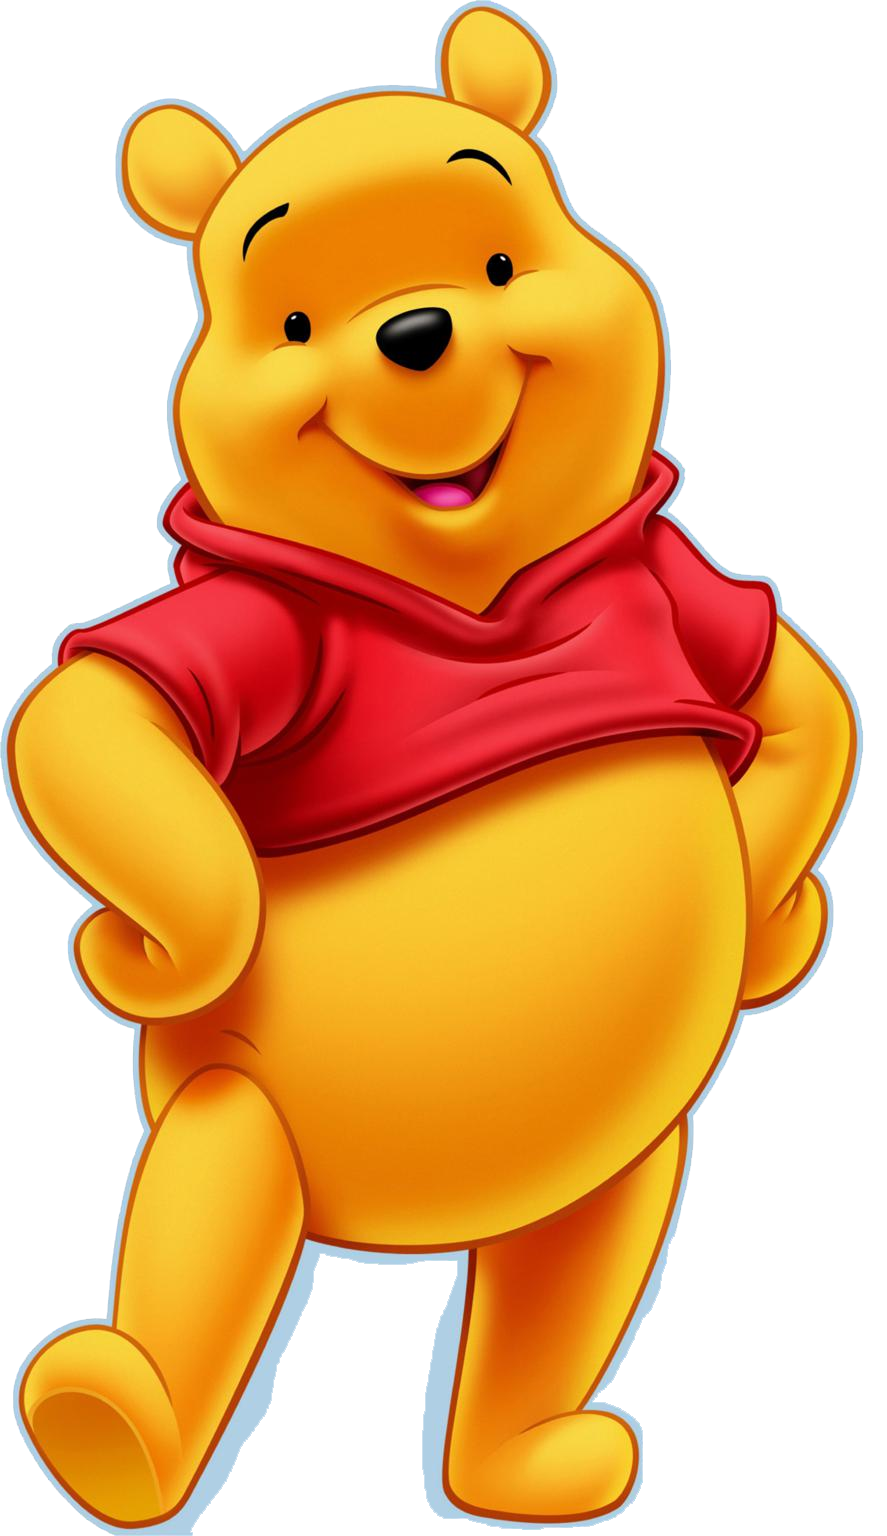 Pin by rachel on. Drawing party winnie the pooh vector download